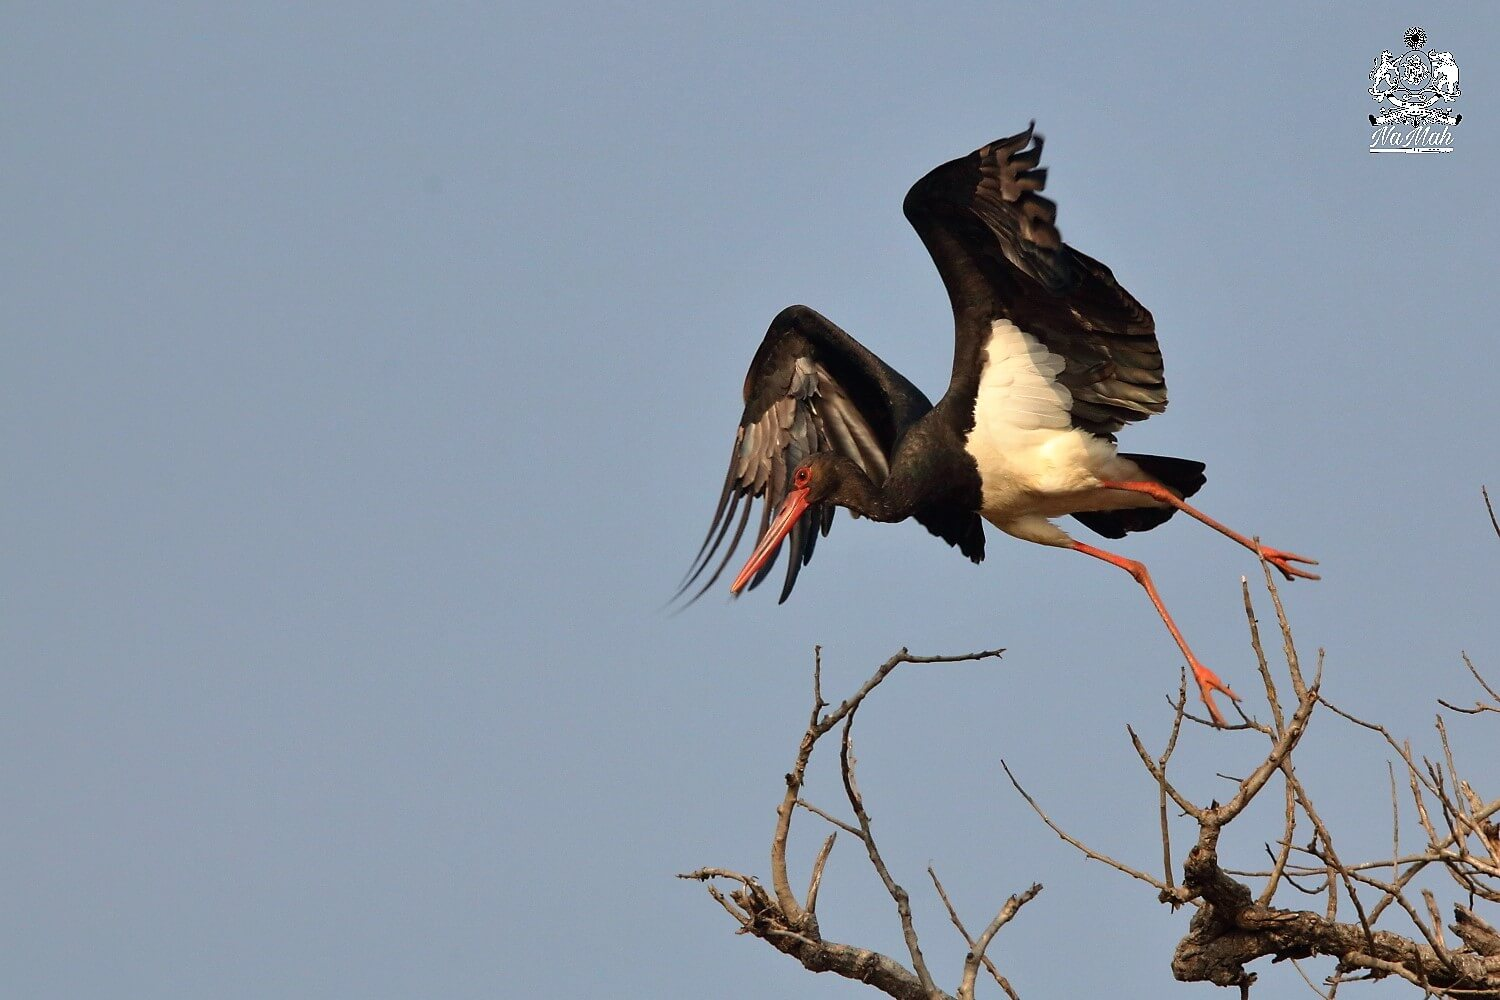 Black stork taking flight from tree branch